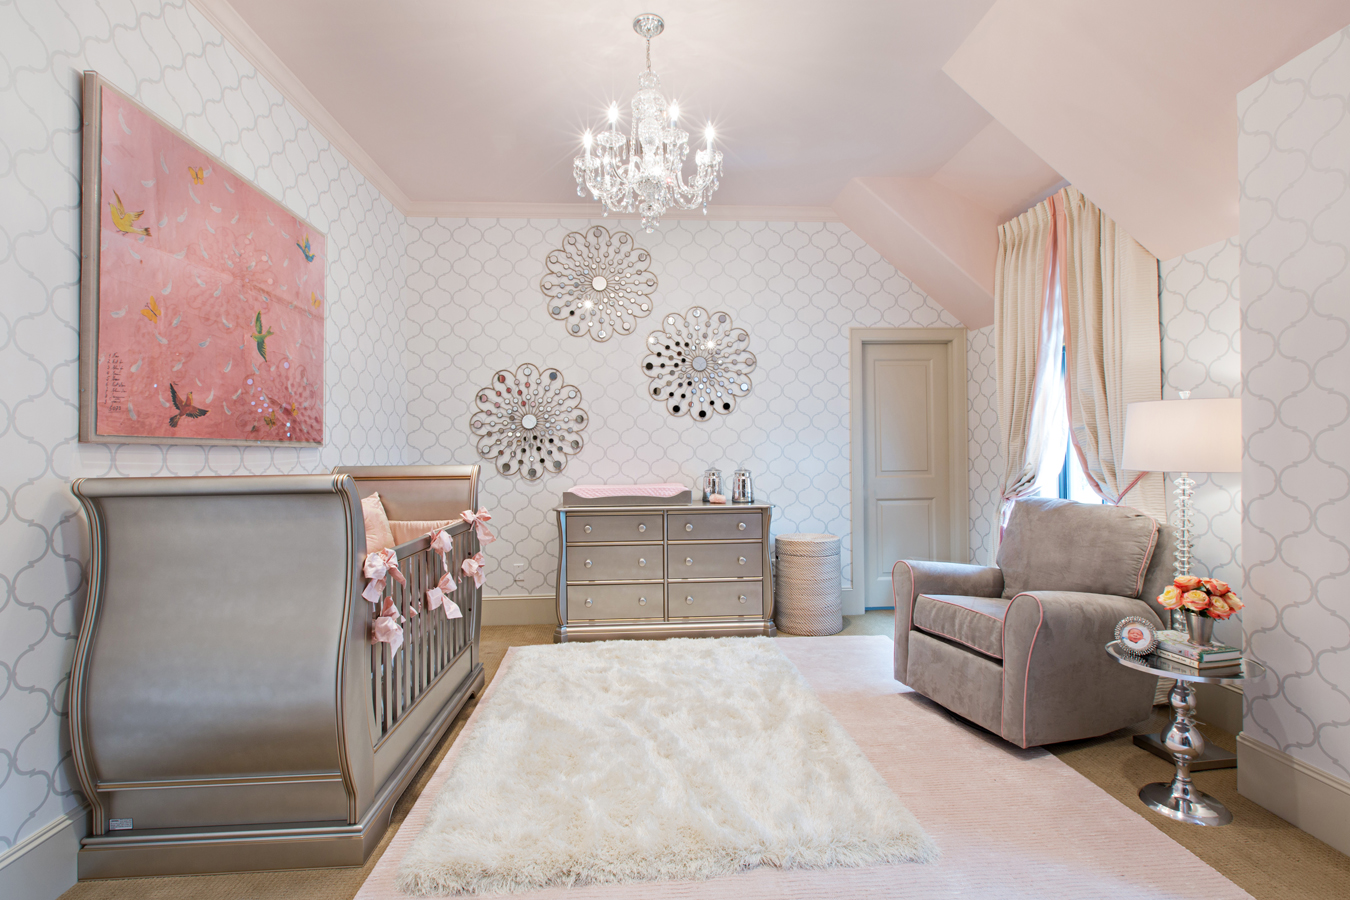 A nursery fit for a princess by Jamie House Design in Memorial area of Houston Texas. Wallpaper and pink ceiling. Painted ceiling.